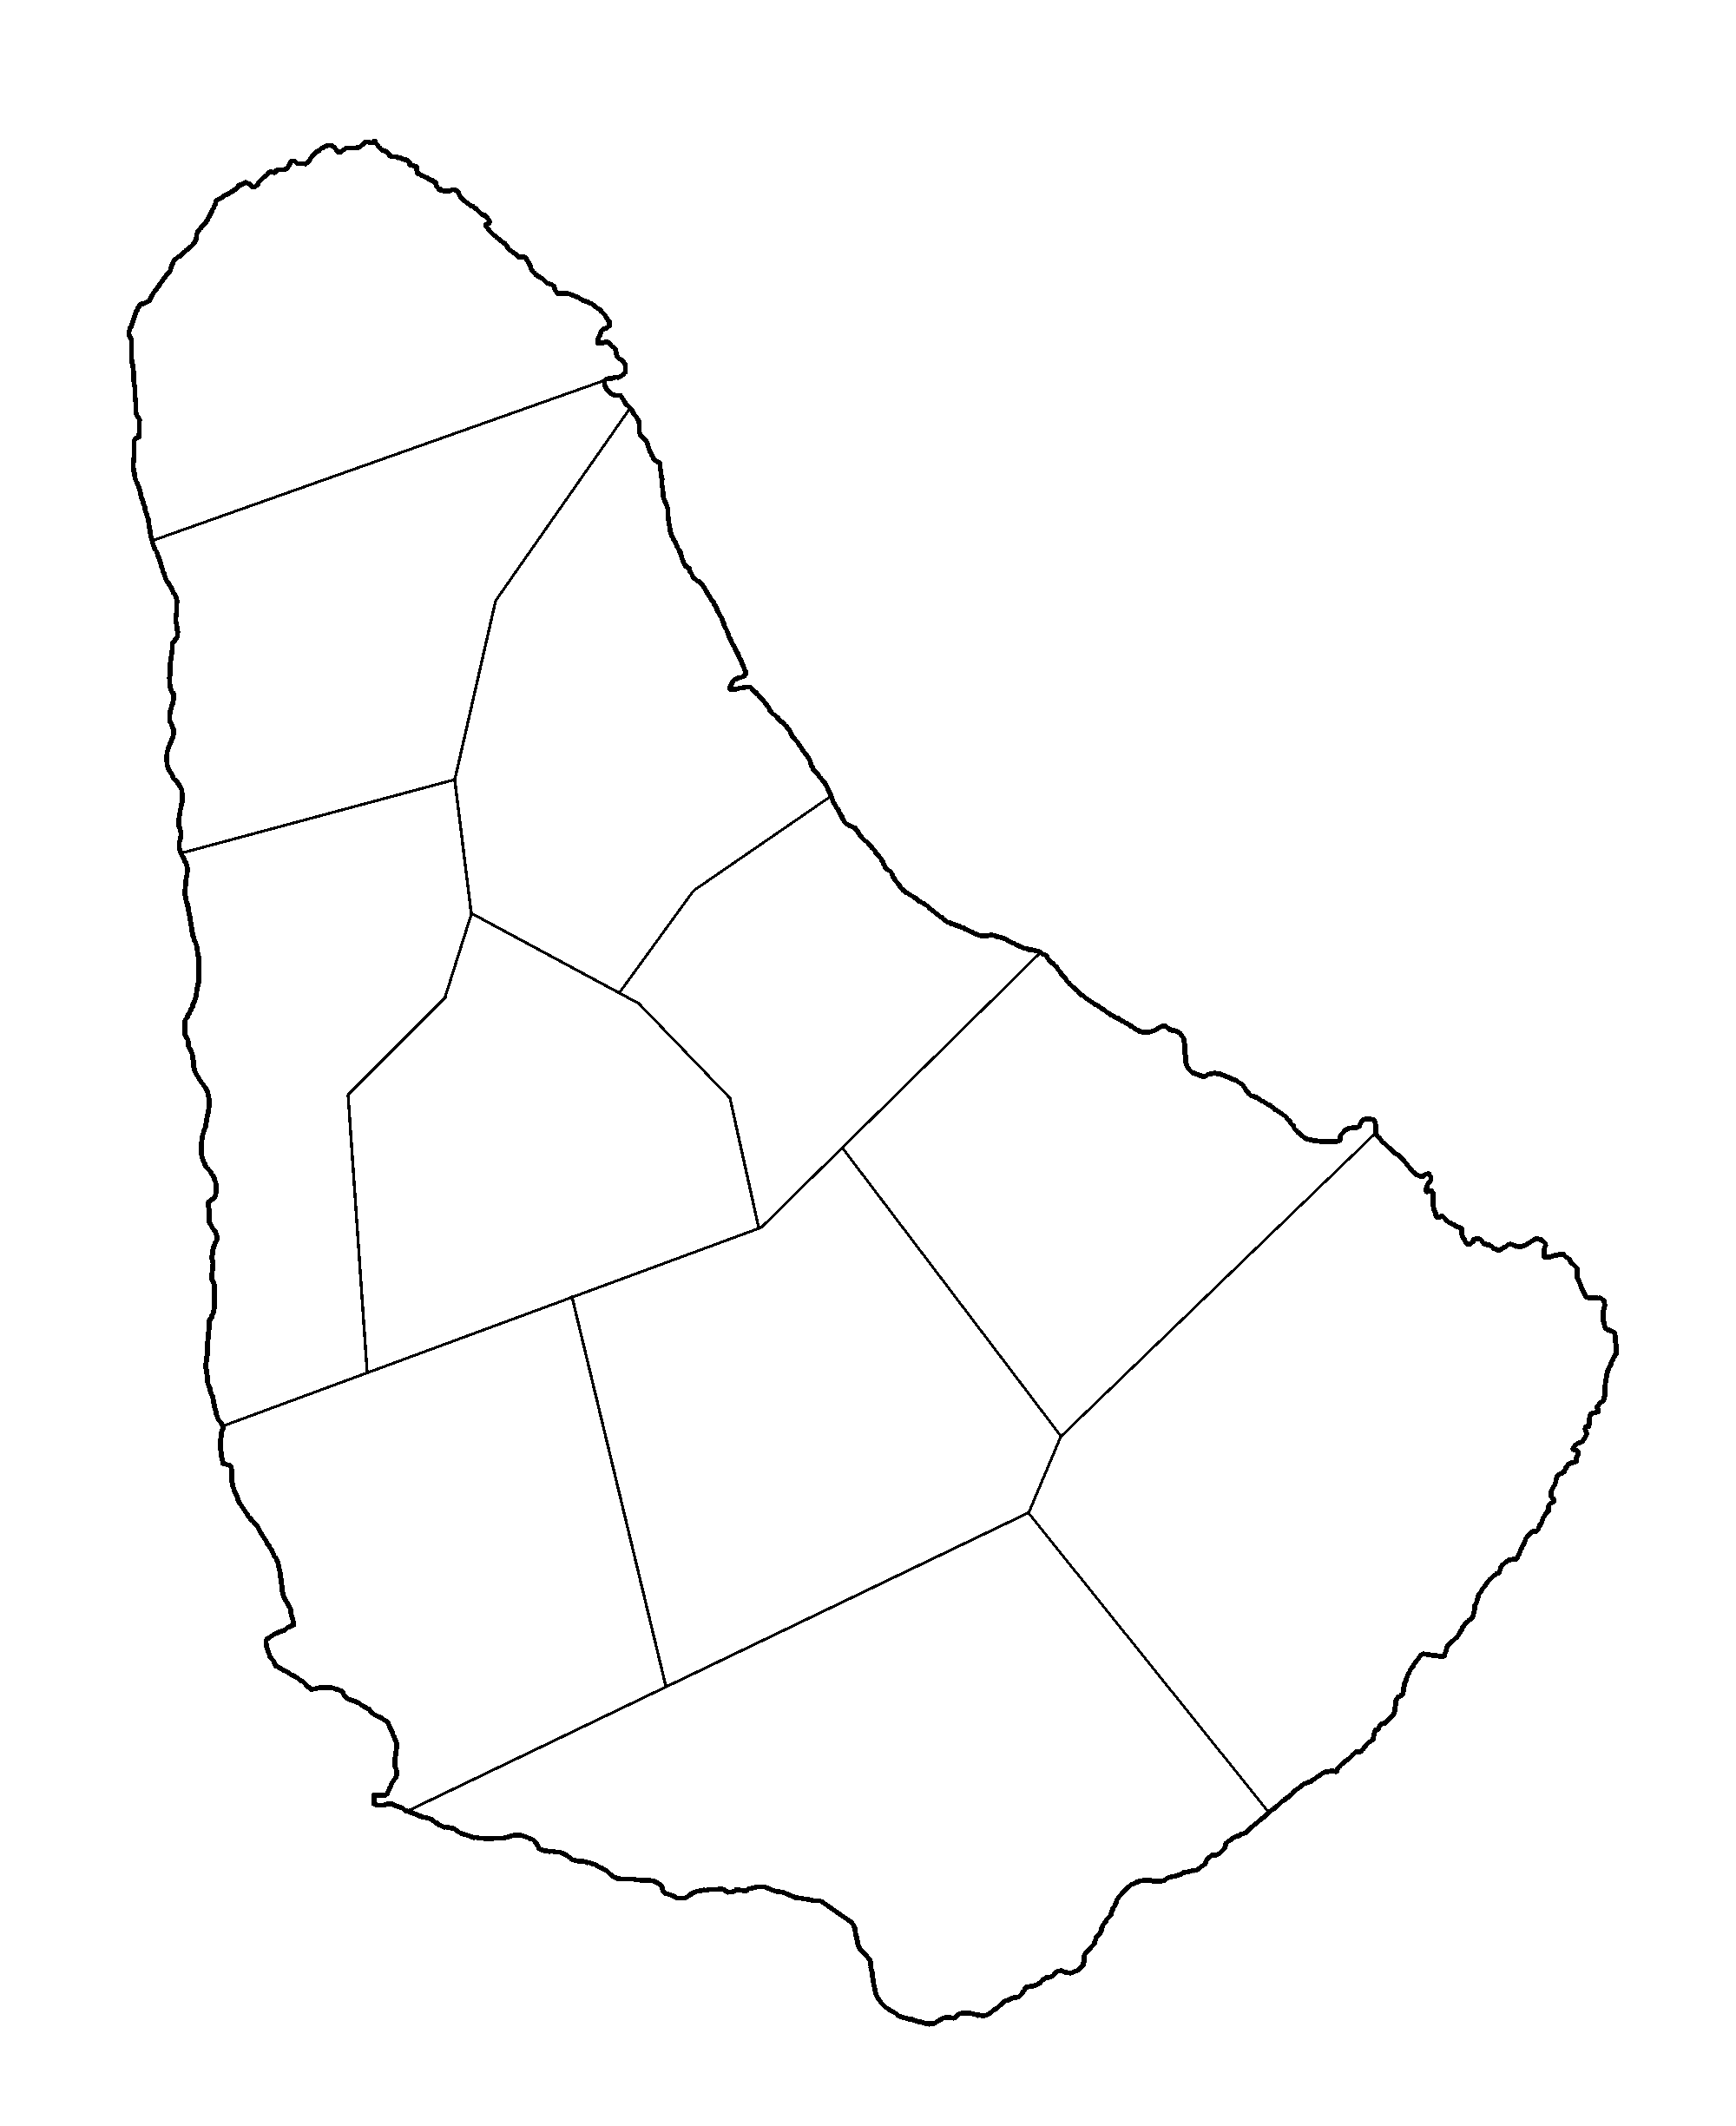 Blank png image. File barbados parishes wikimedia